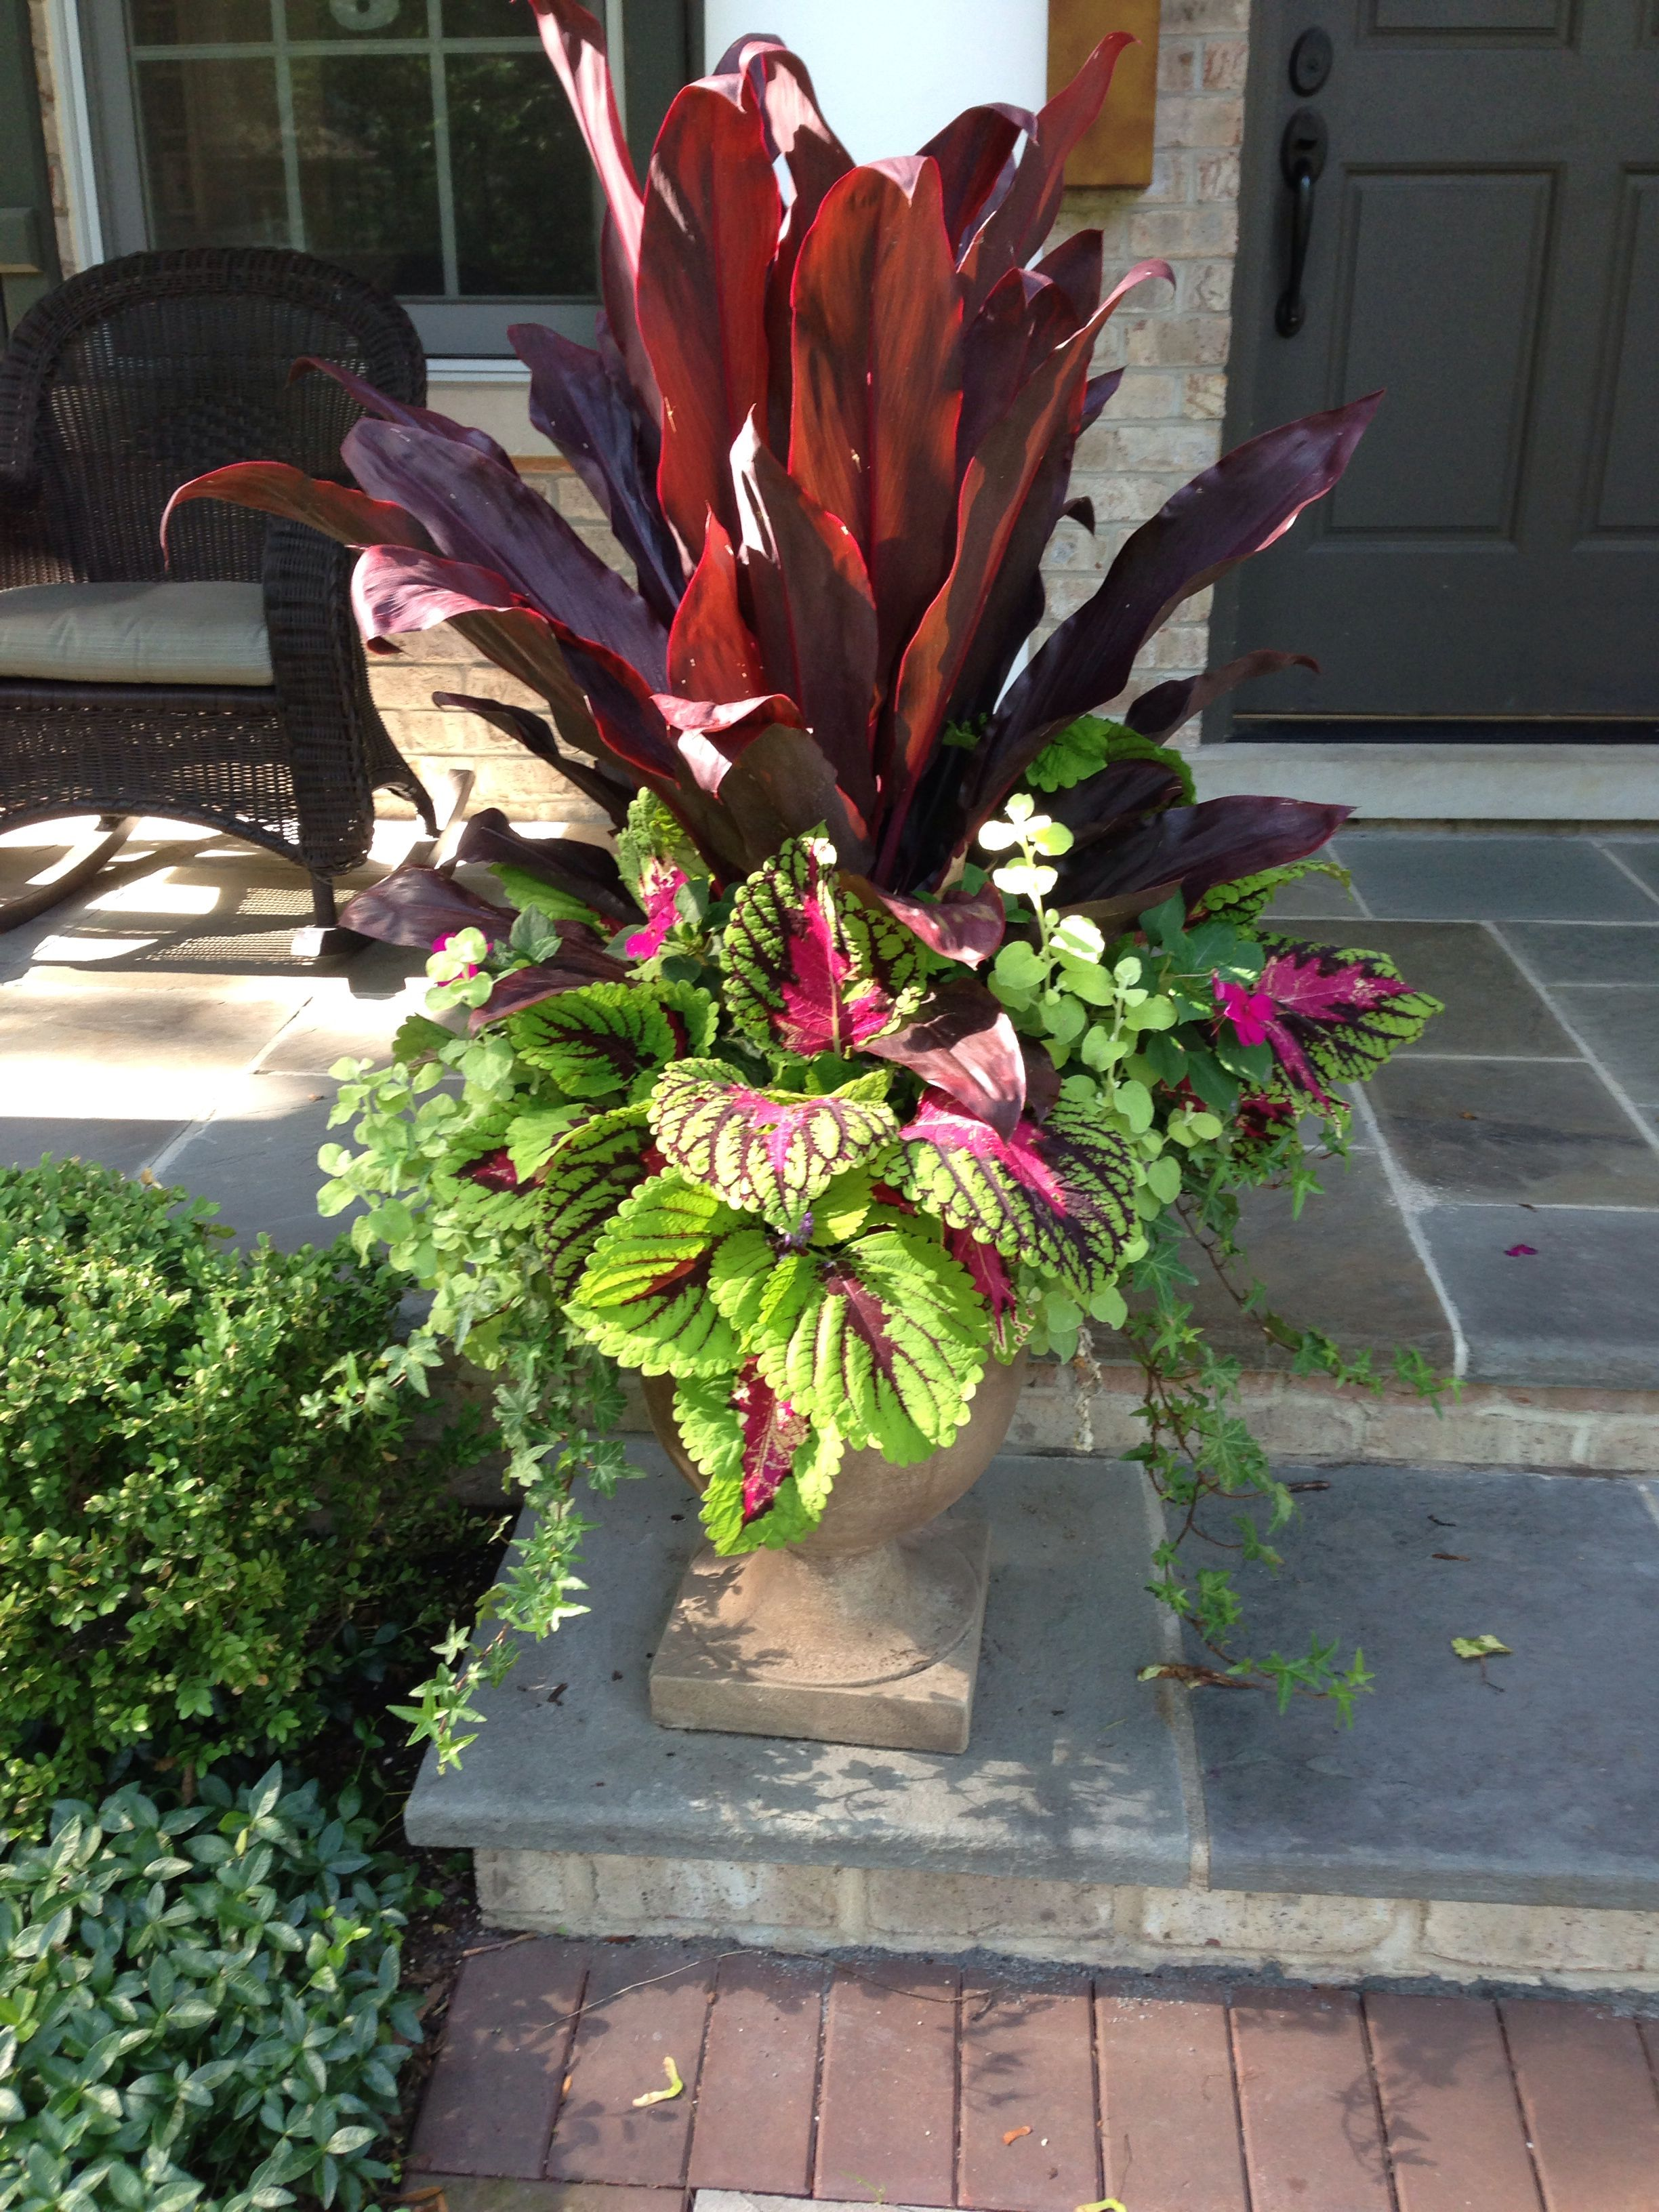 Pretty And Not Too Fussy Redpink Tropical Plant In Center Or A